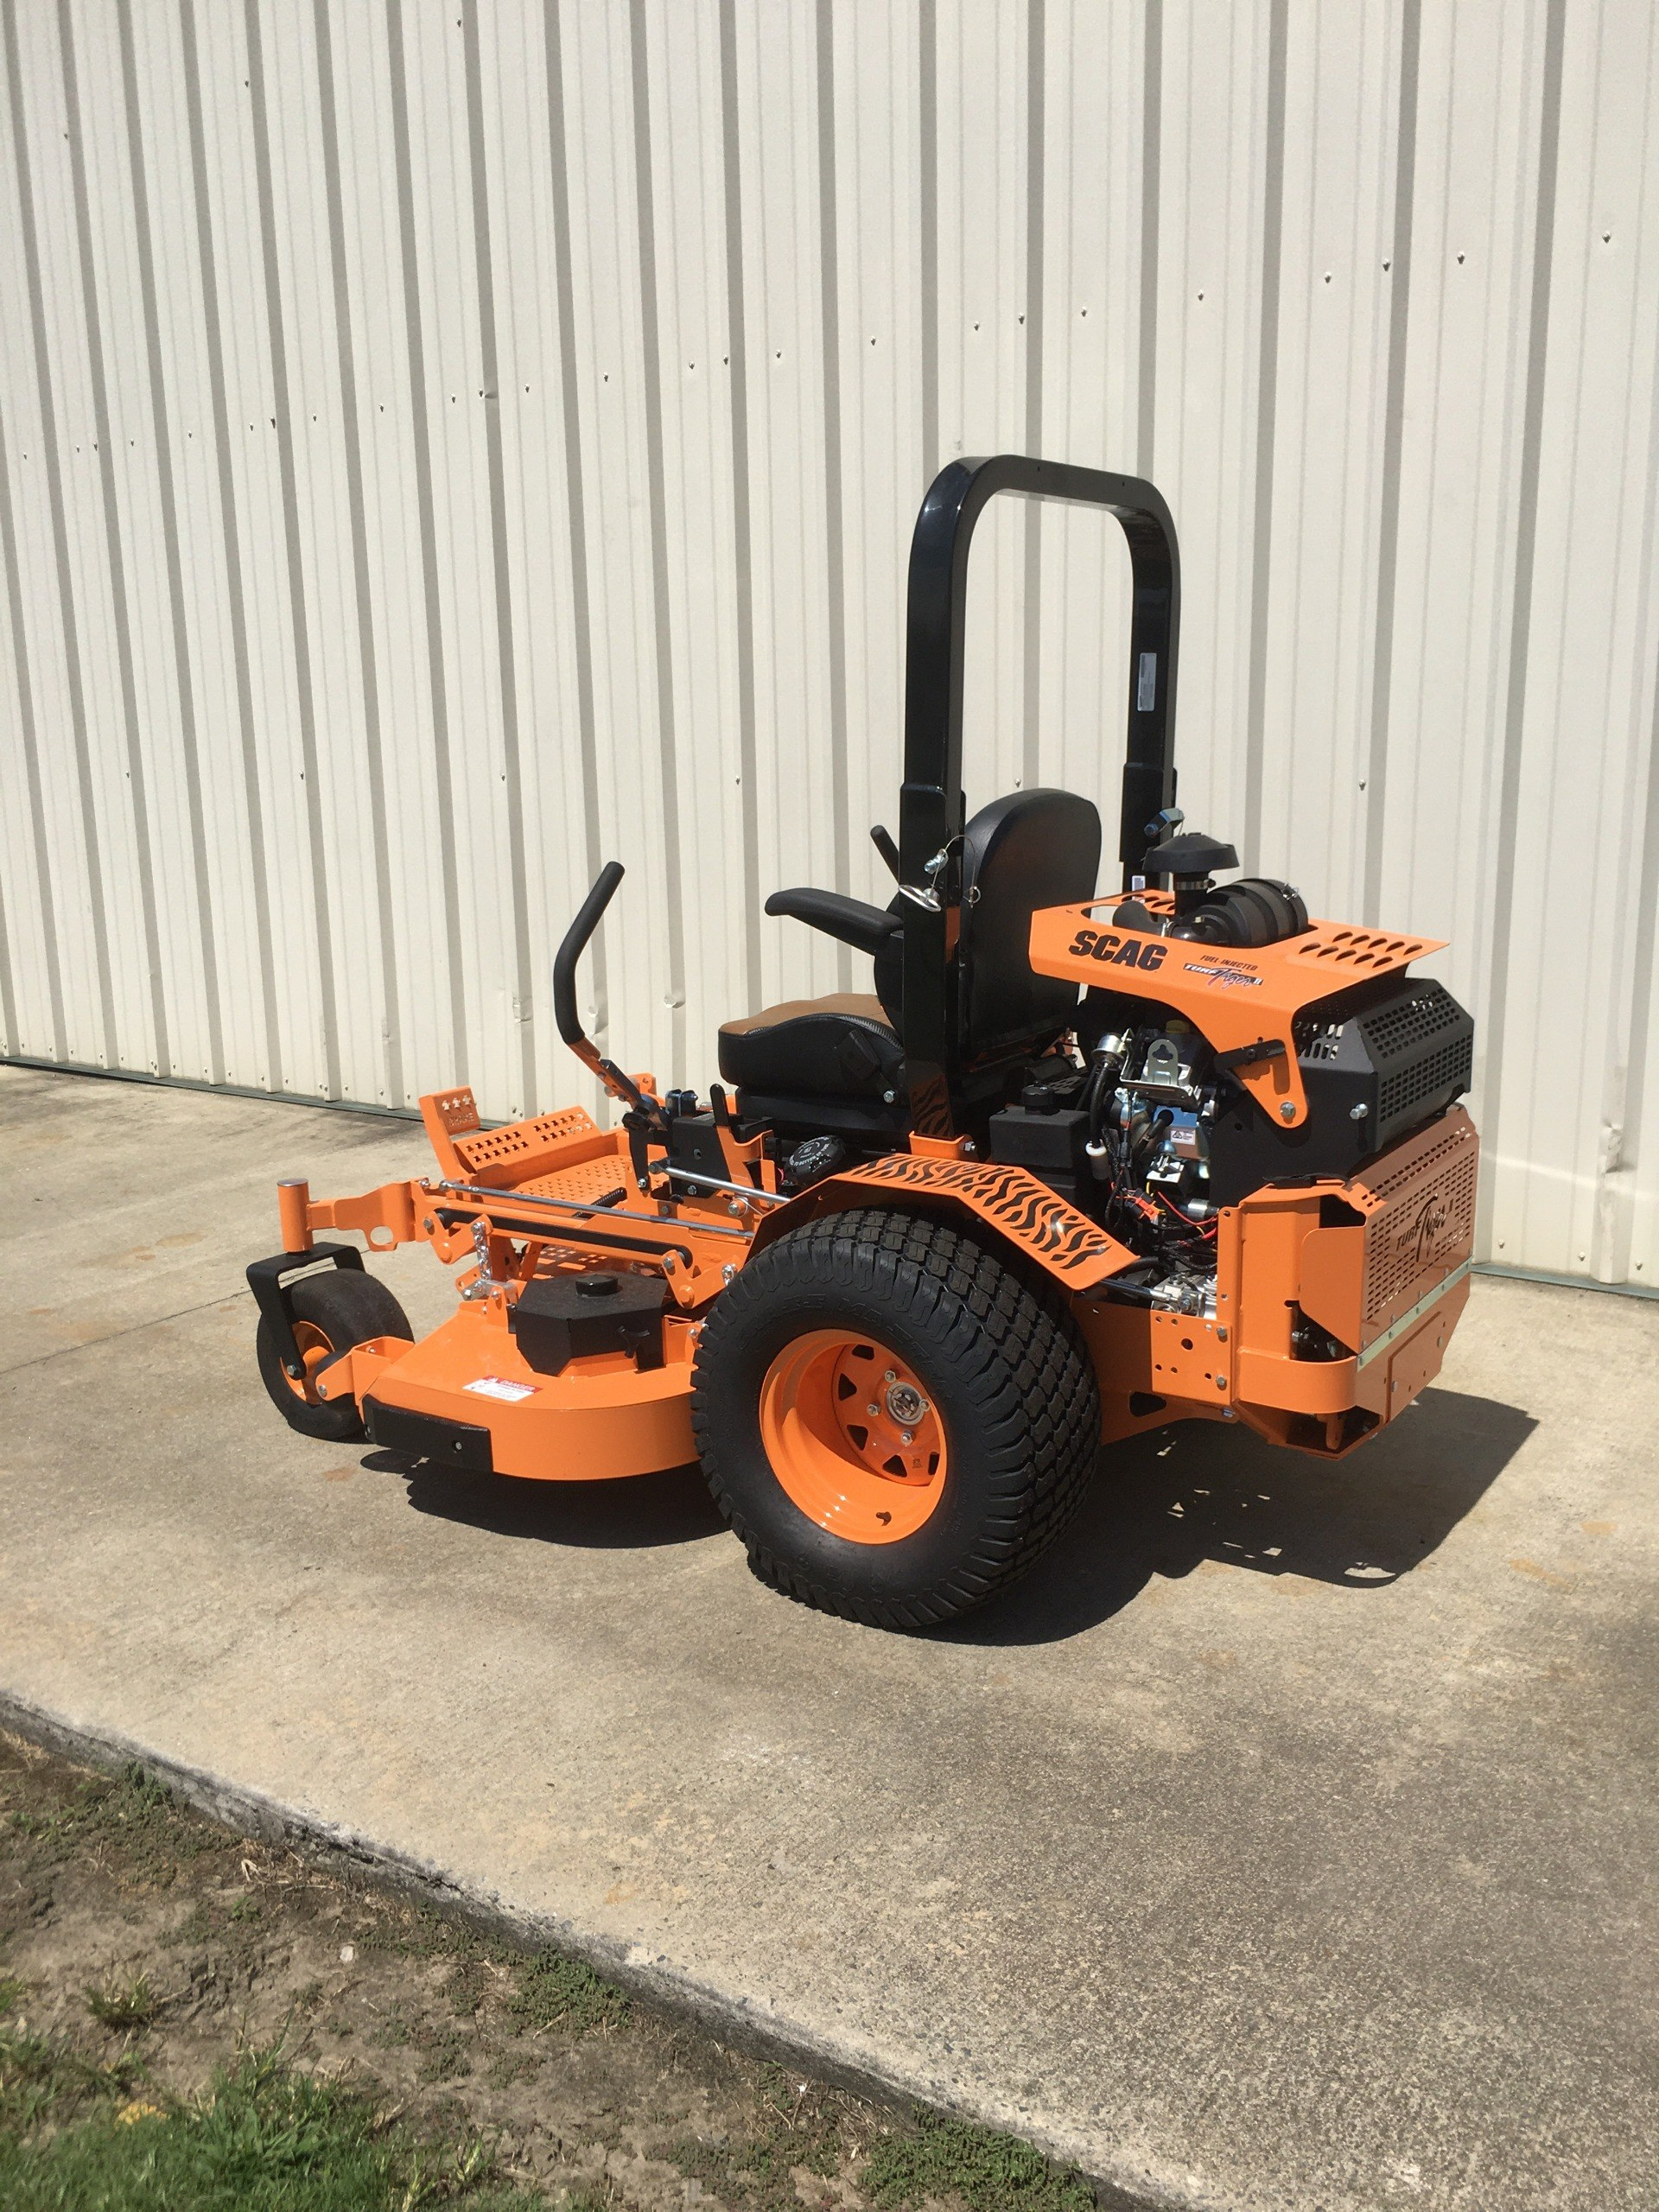 2020 SCAG Power Equipment Turf Tiger II 61 in. Briggs Vanguard EFI 37 hp in Tifton, Georgia - Photo 3